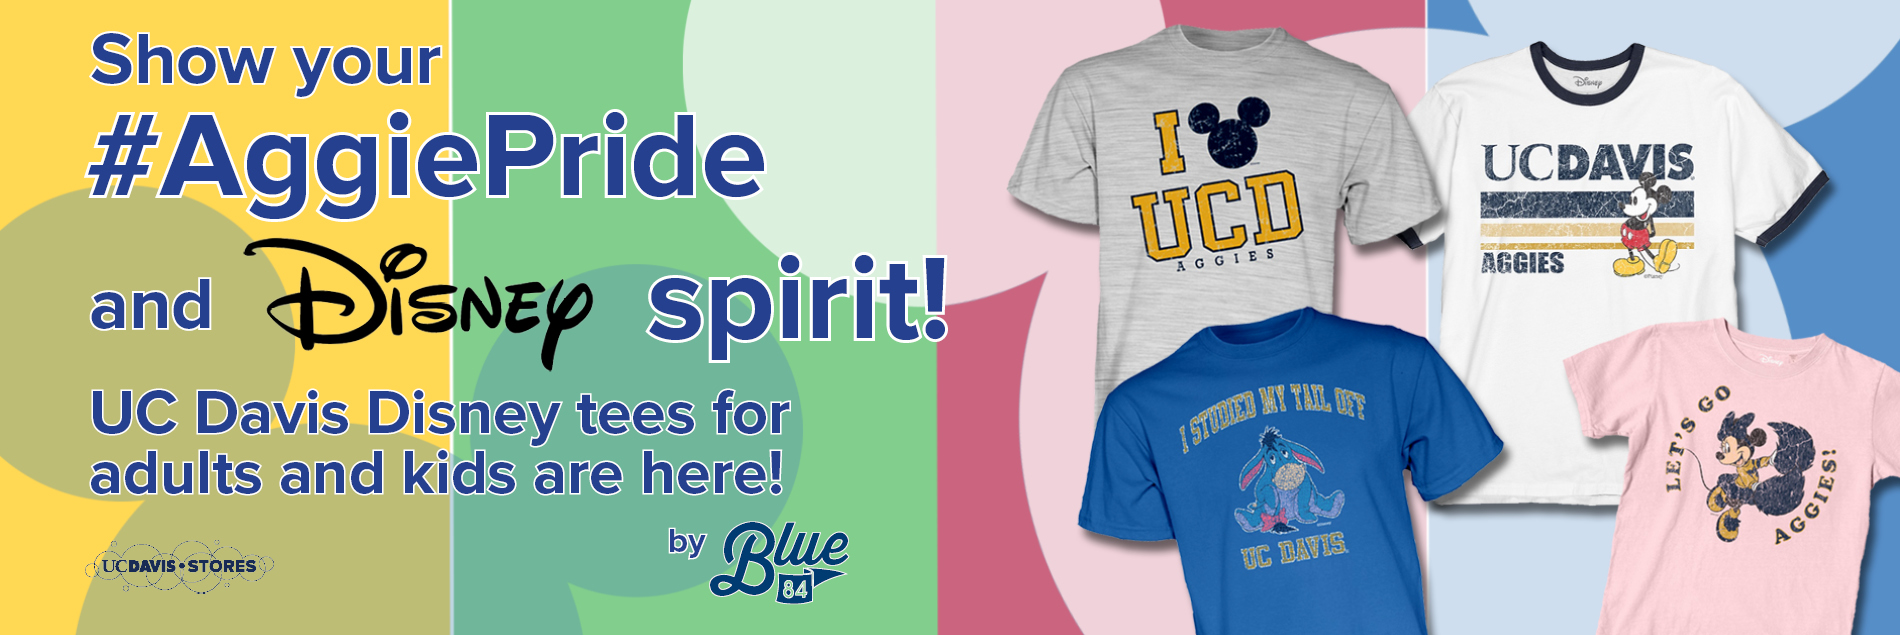 Disney Clothes Banner